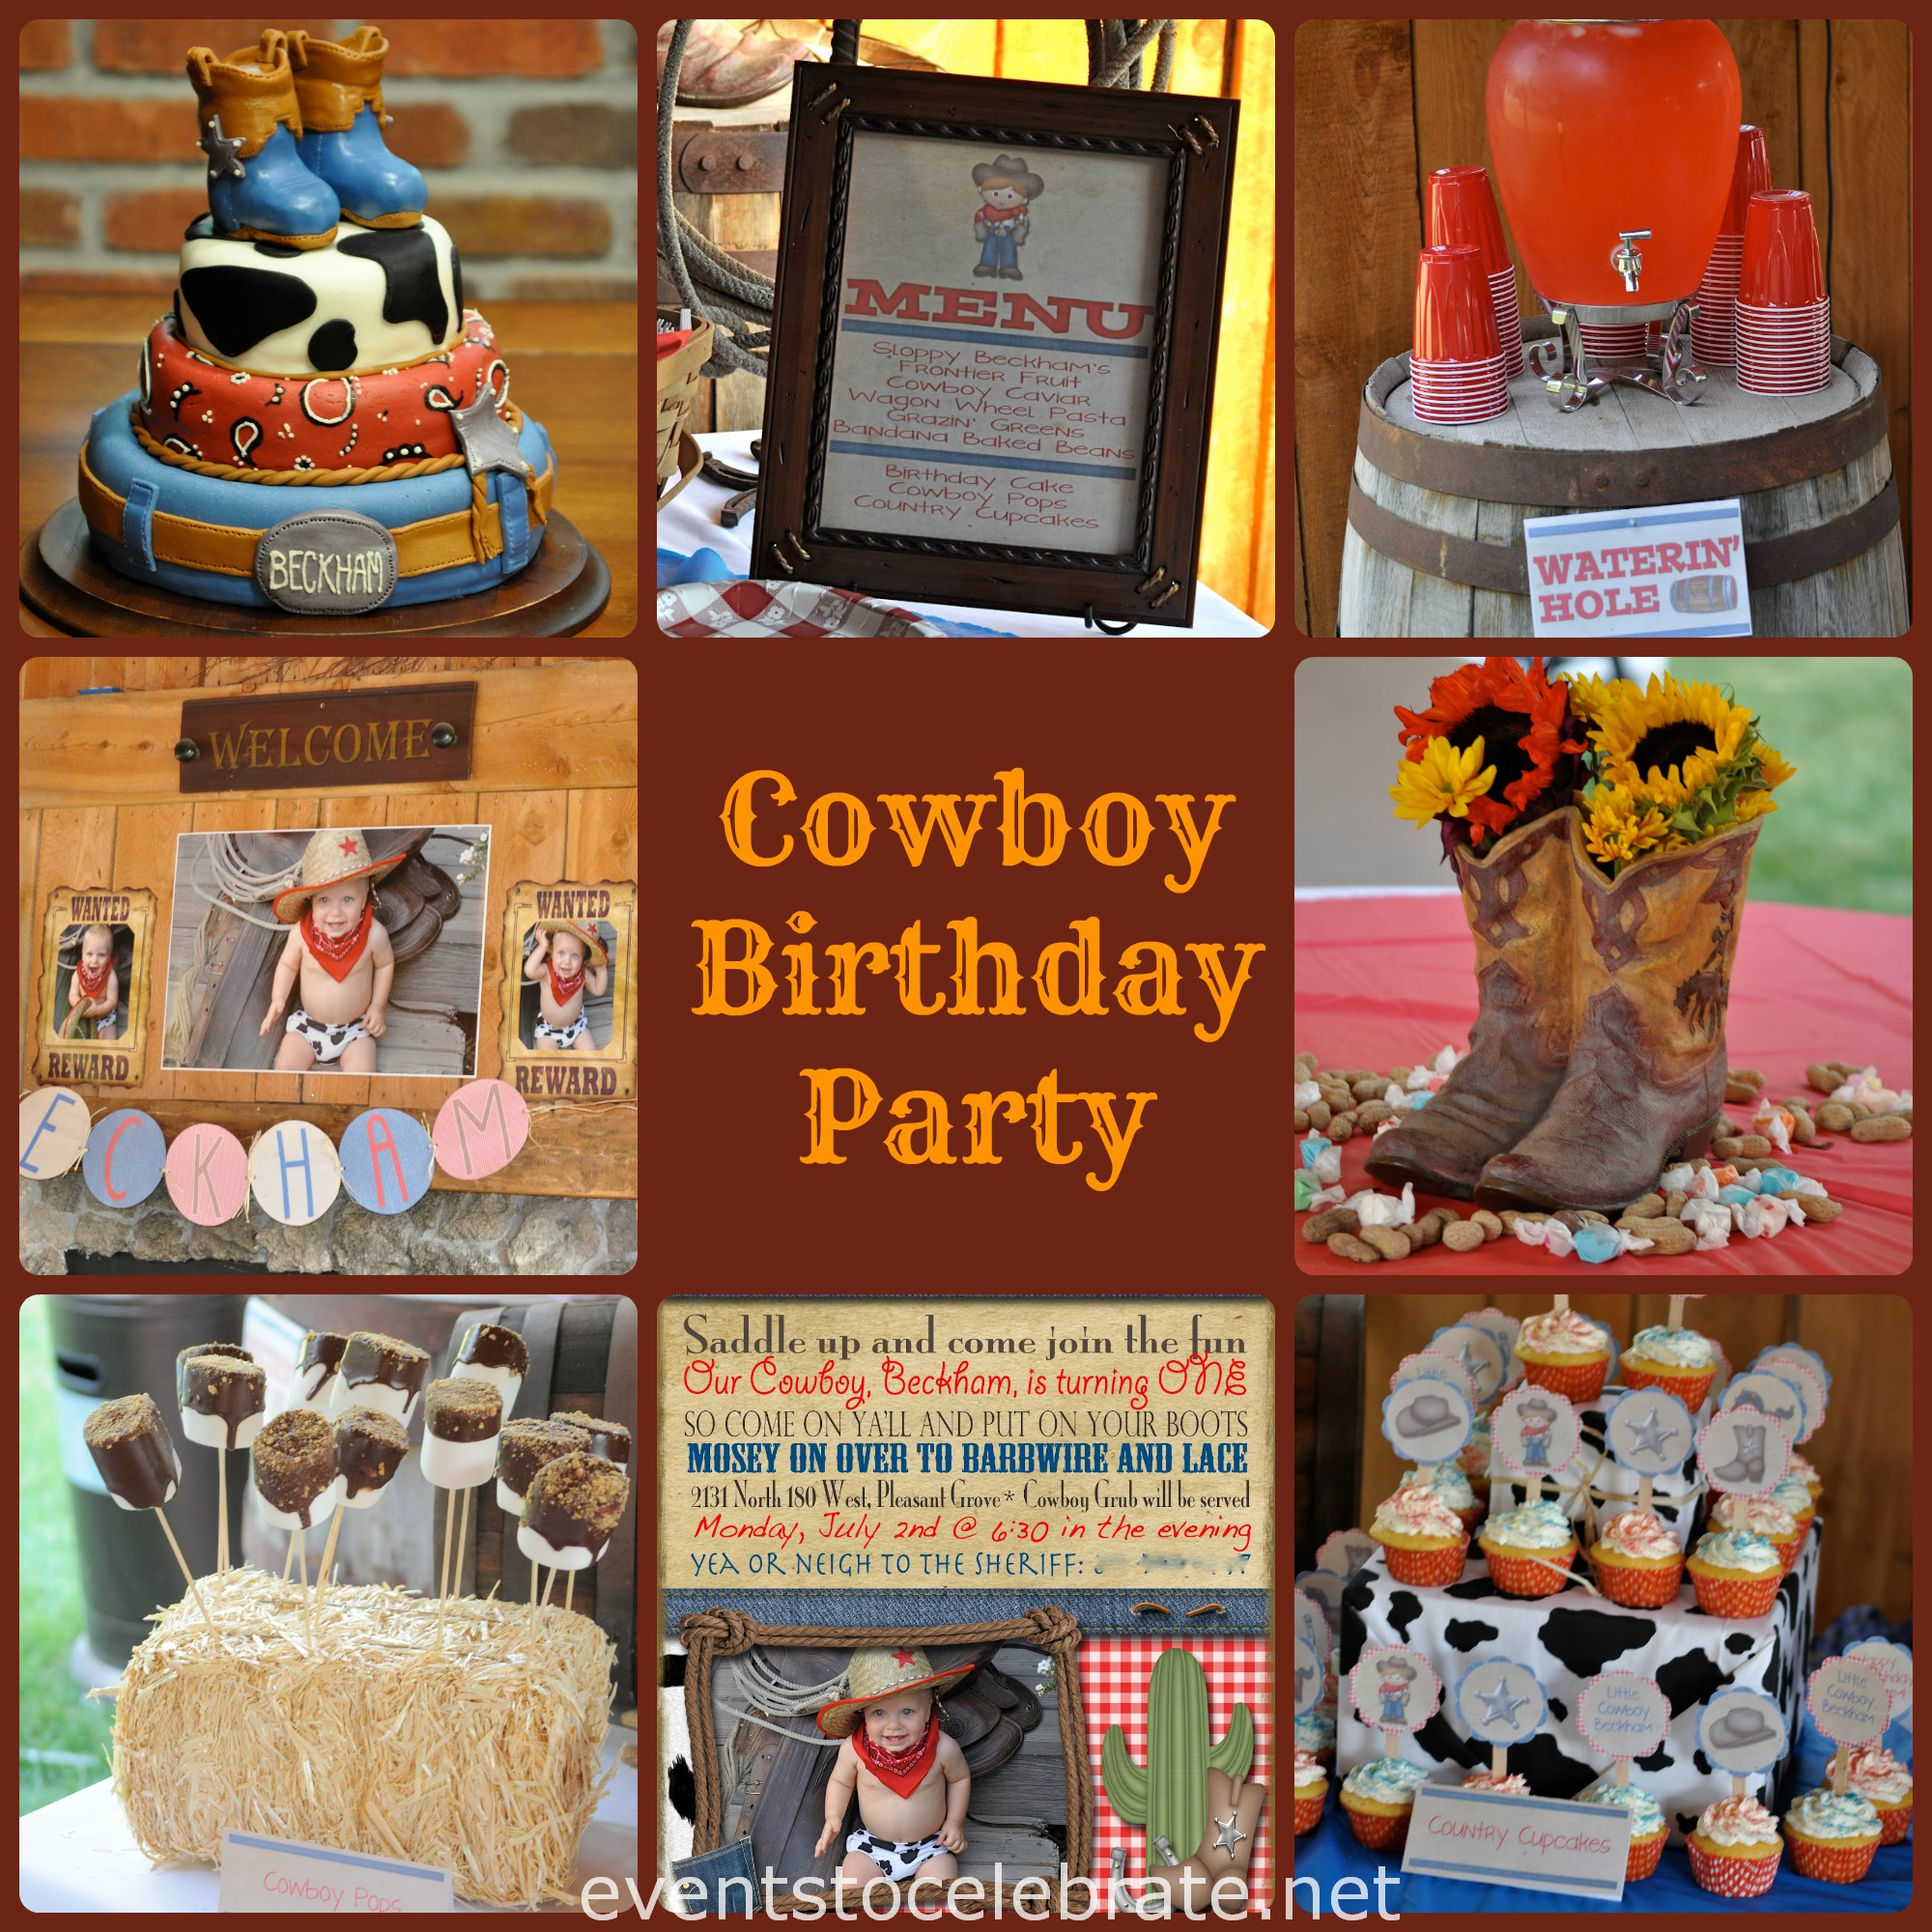 Cowboy Birthday Party Ideas Events To CELEBRATE